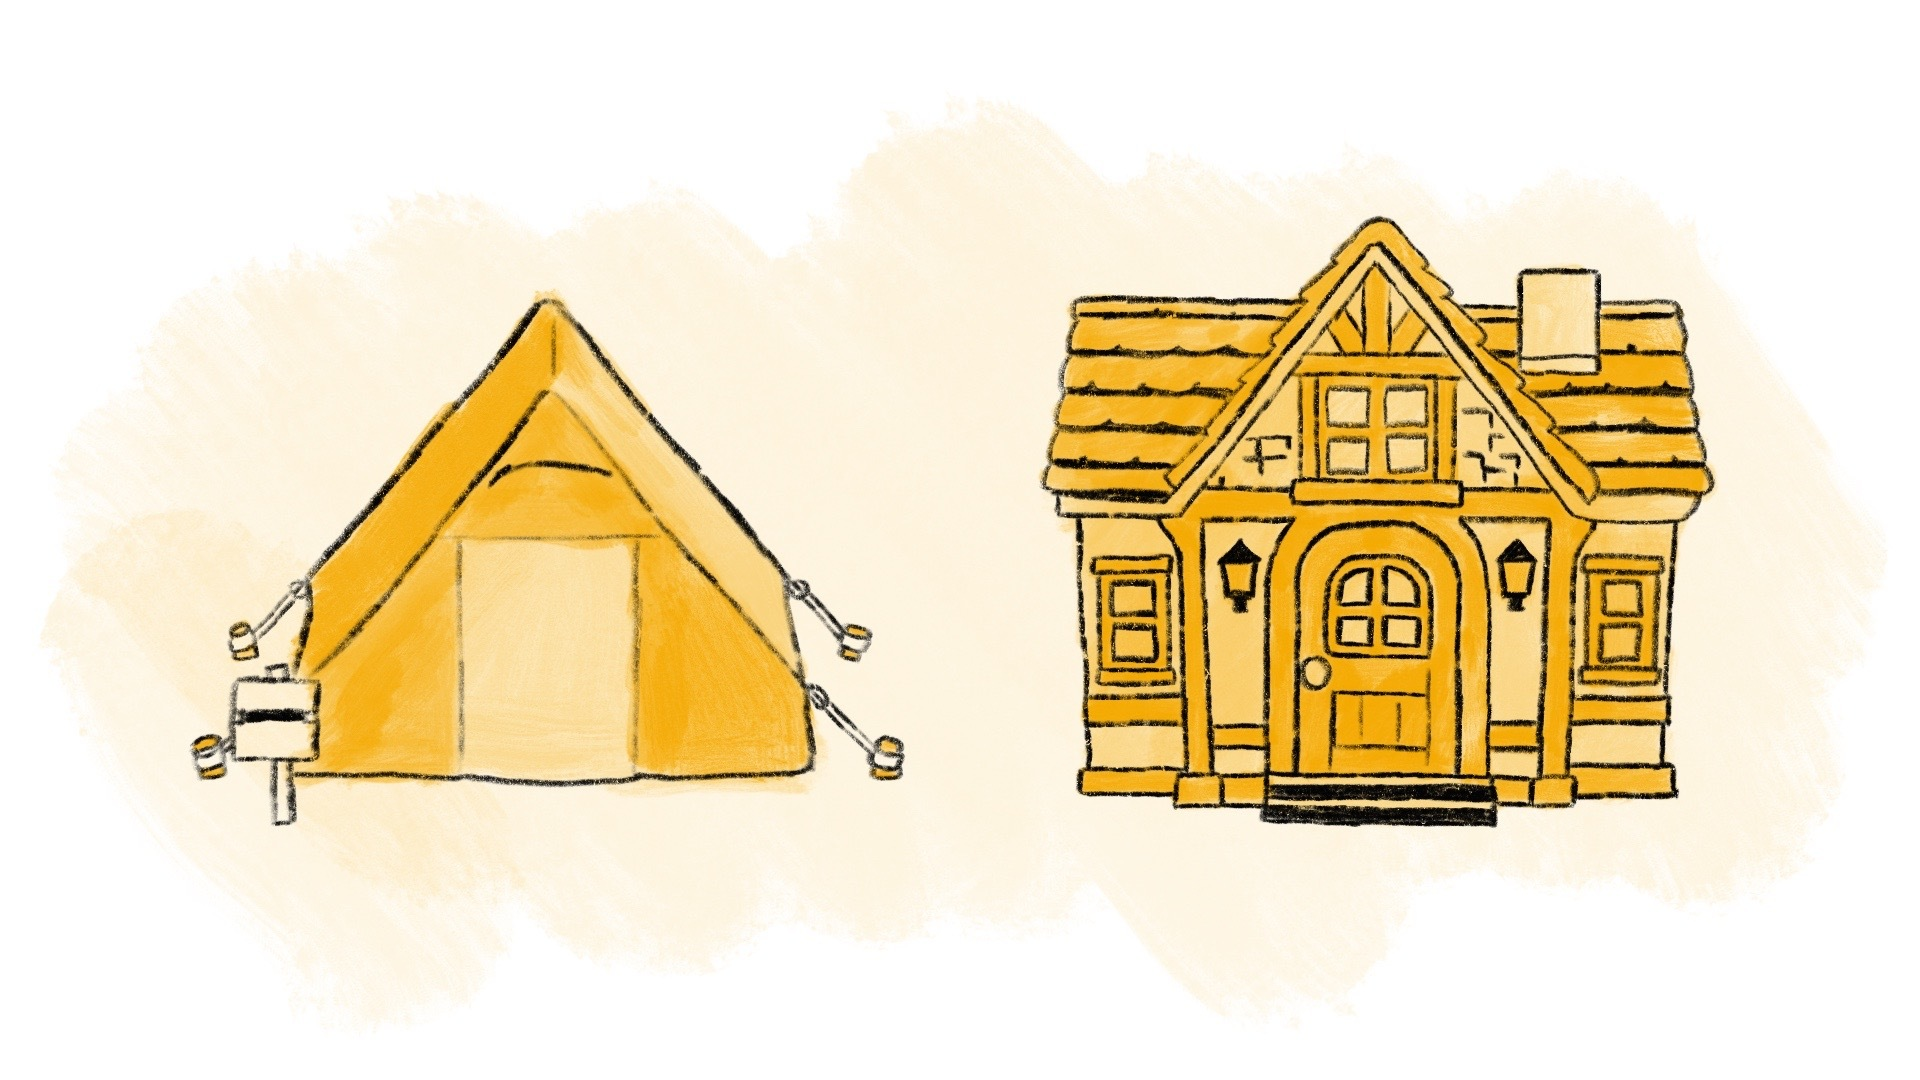 Illustrated tent and house